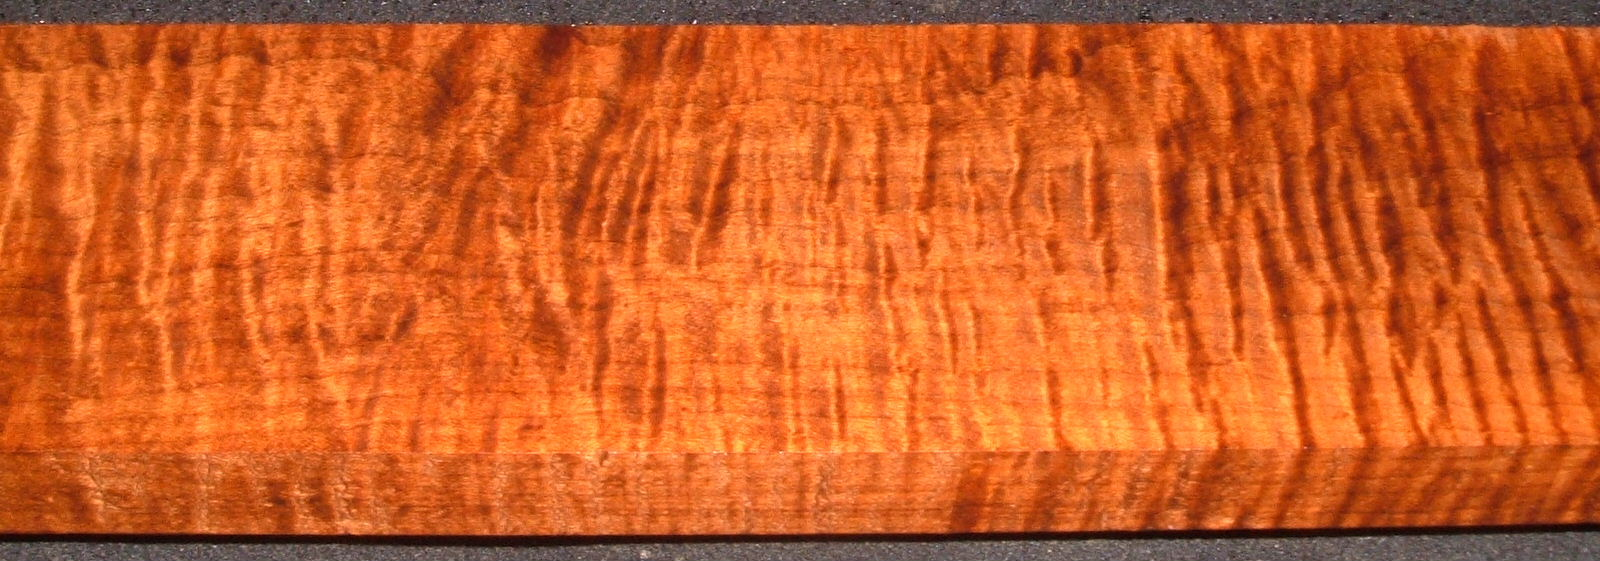 RHM2010-338,1x4-1/2x34, Roasted Torrefied Curly, Tiger Maple, Roasted Hard Maple